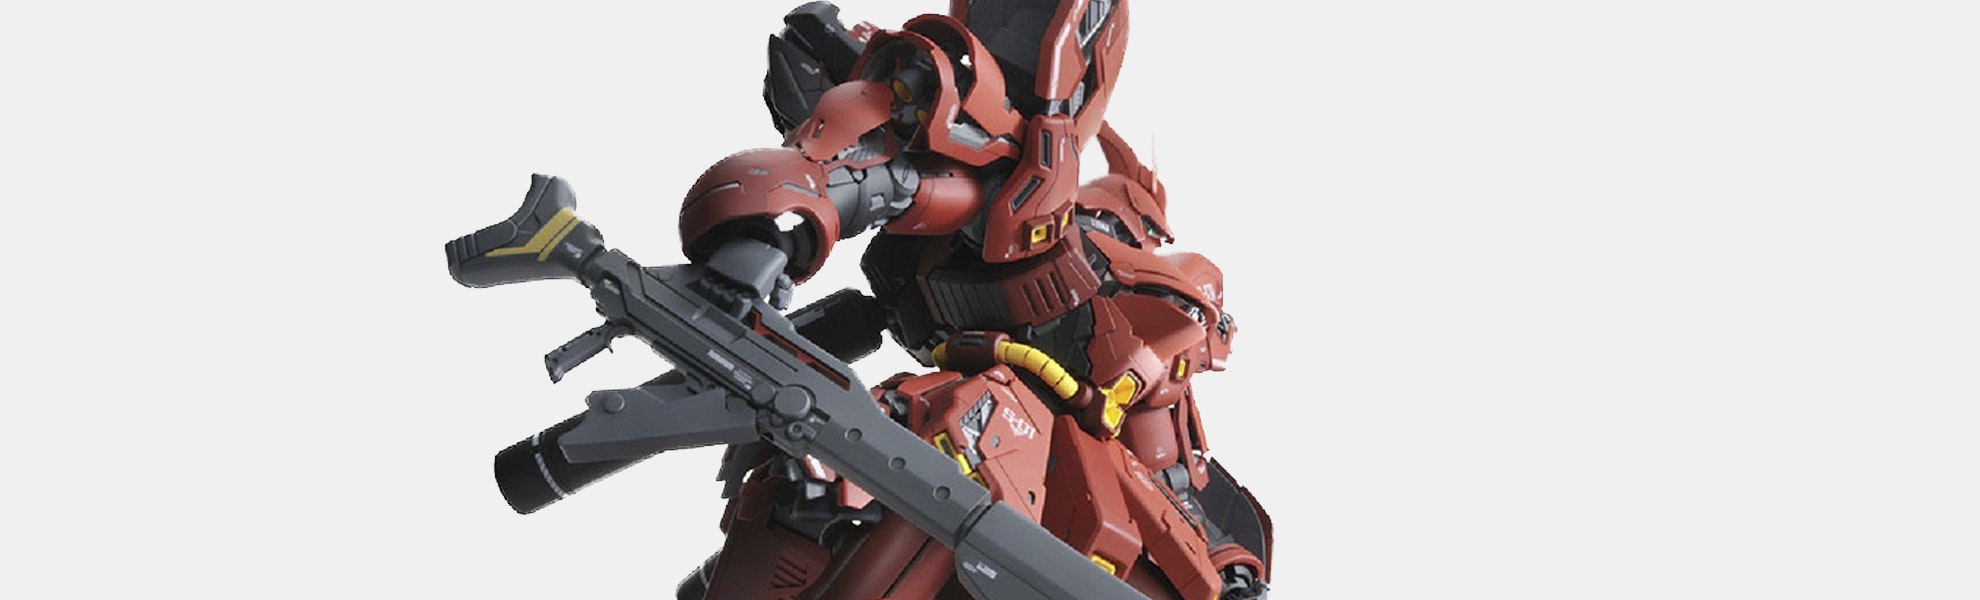 Gundam MG Sazabi Ver. Ka 1/100th